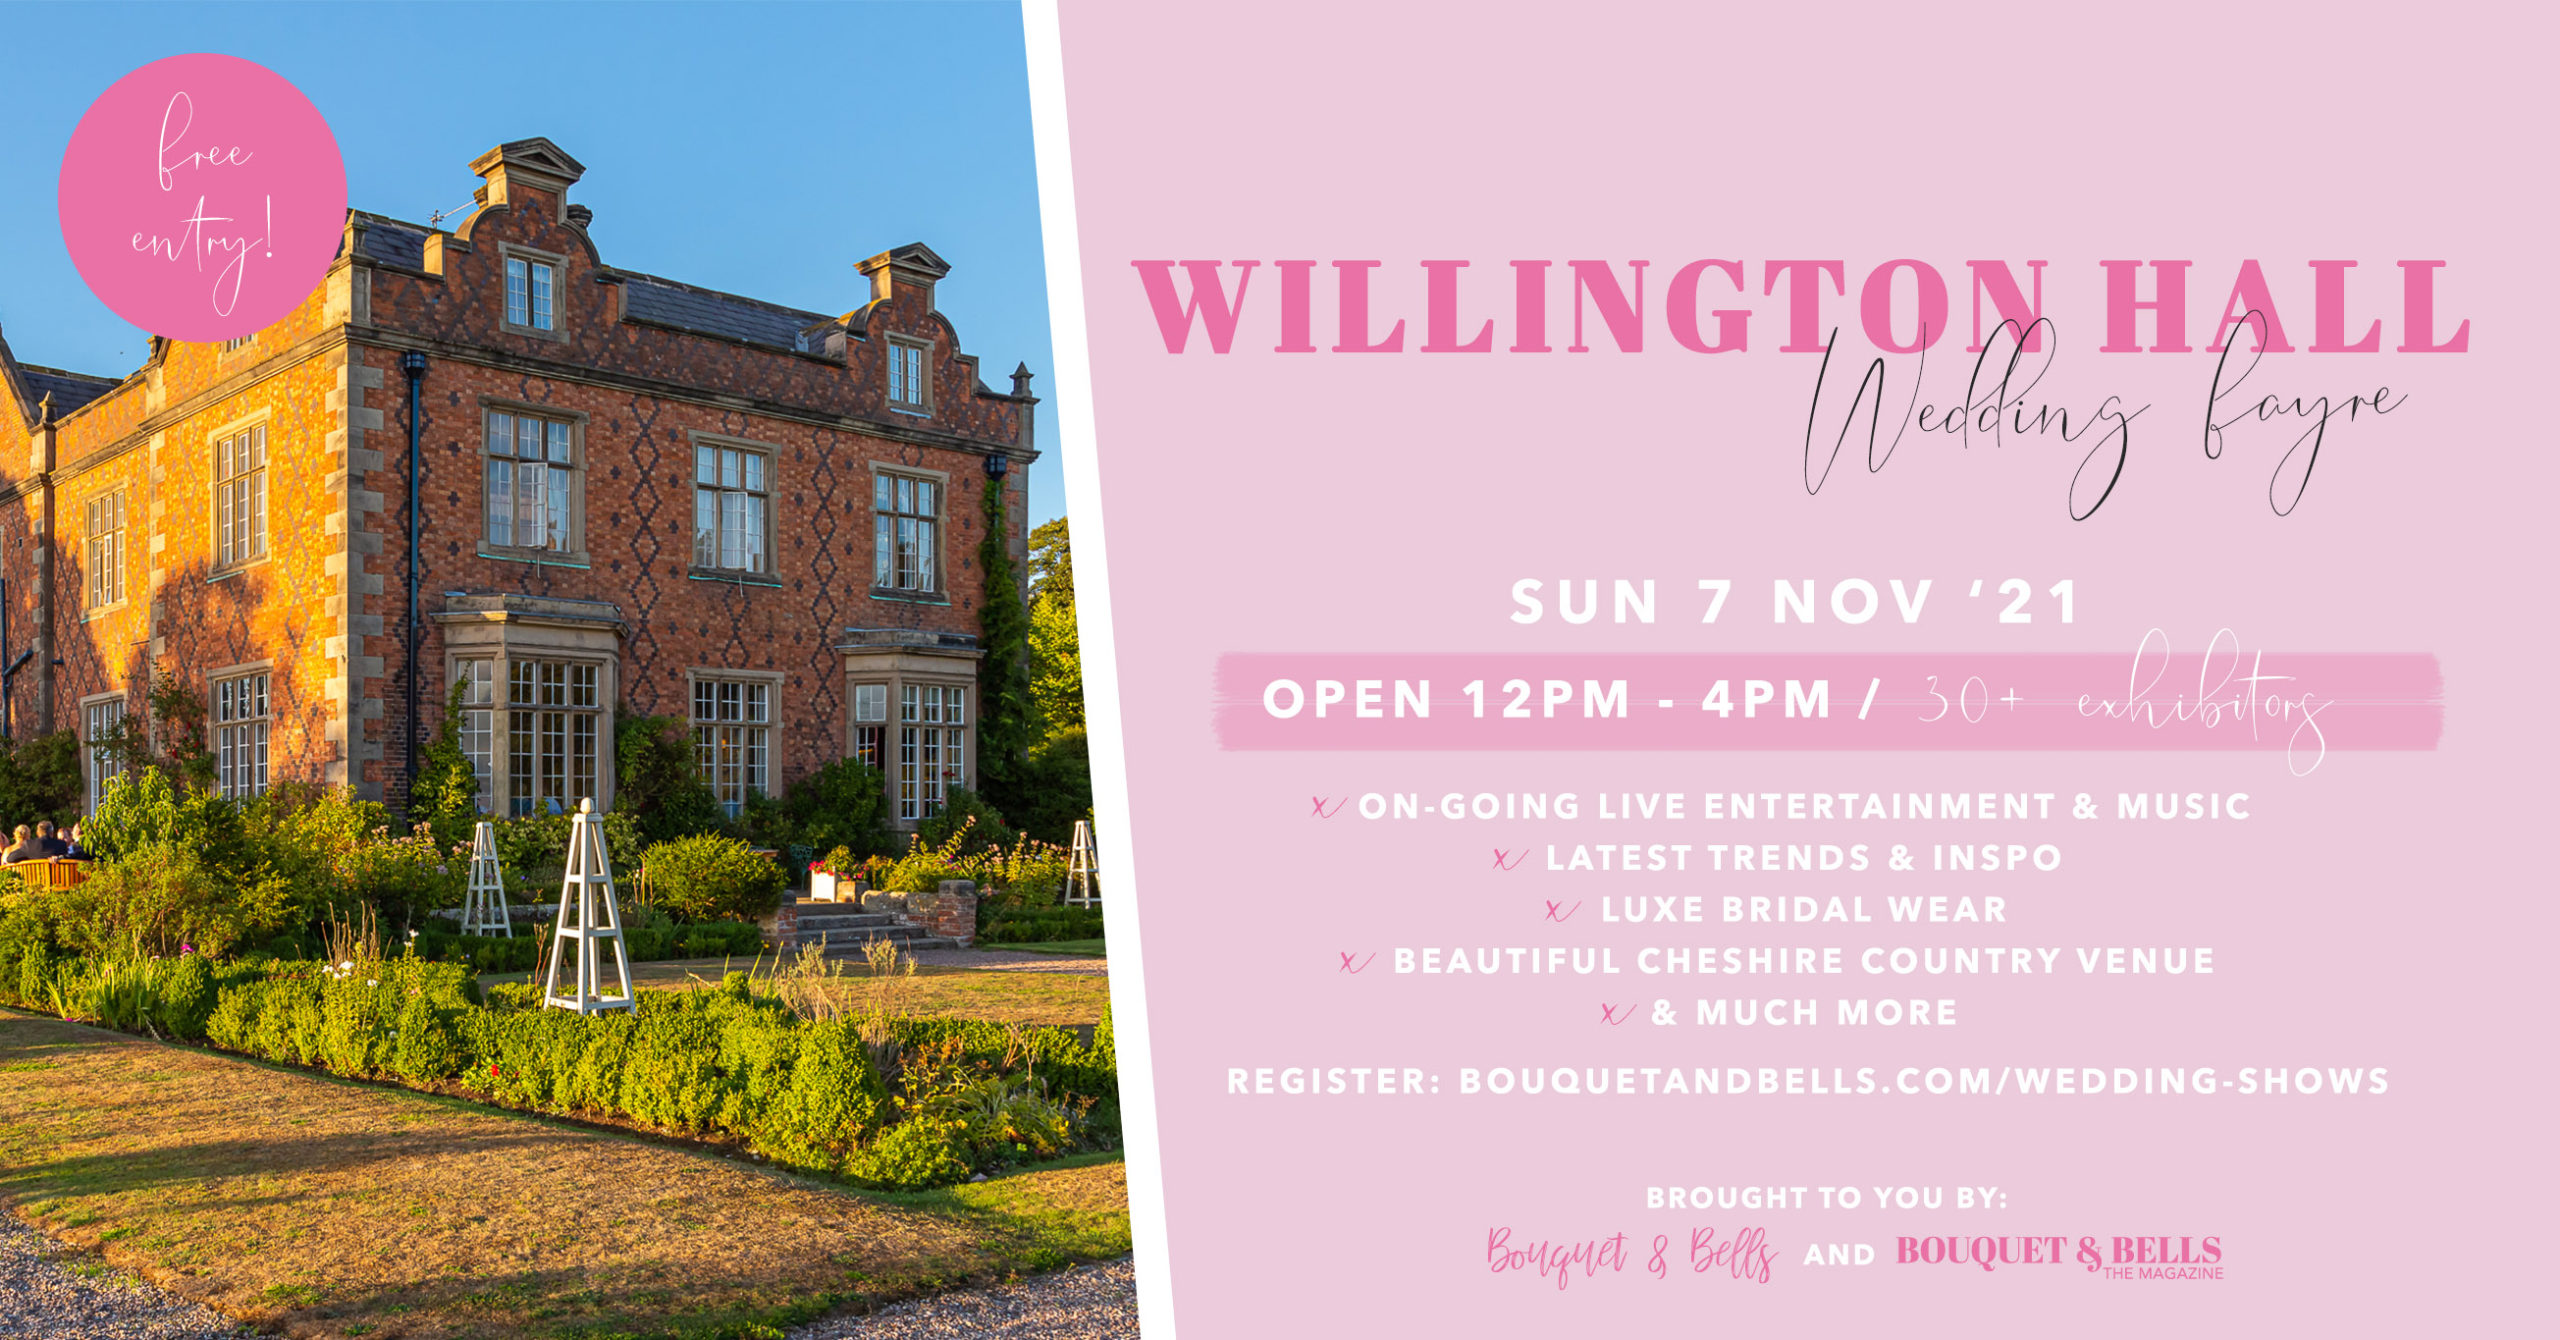 willington-hall-wedding-fayre-banner